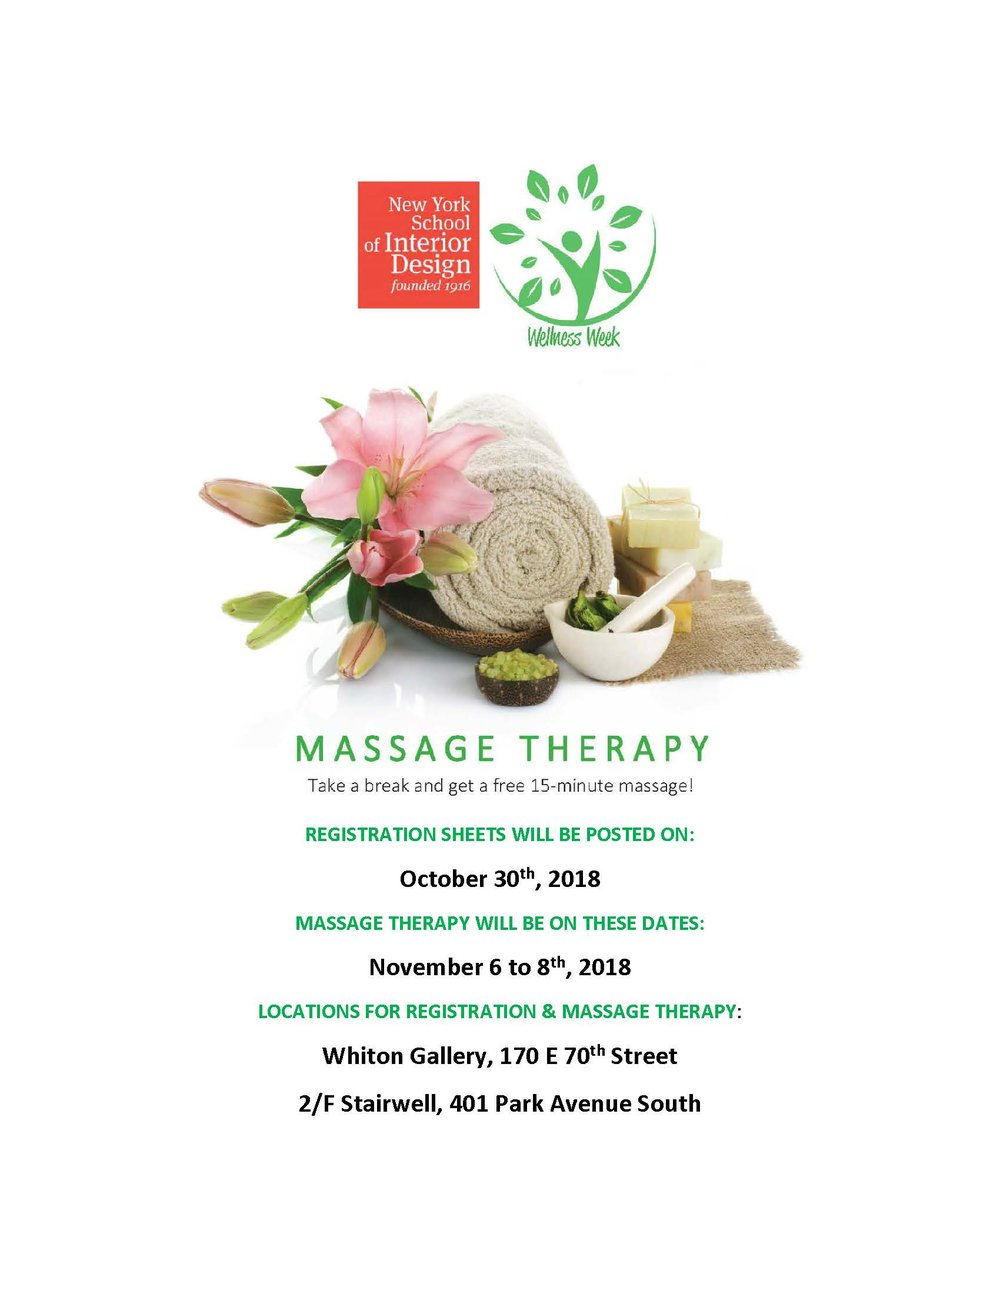 Massage Therapy flier.jpg